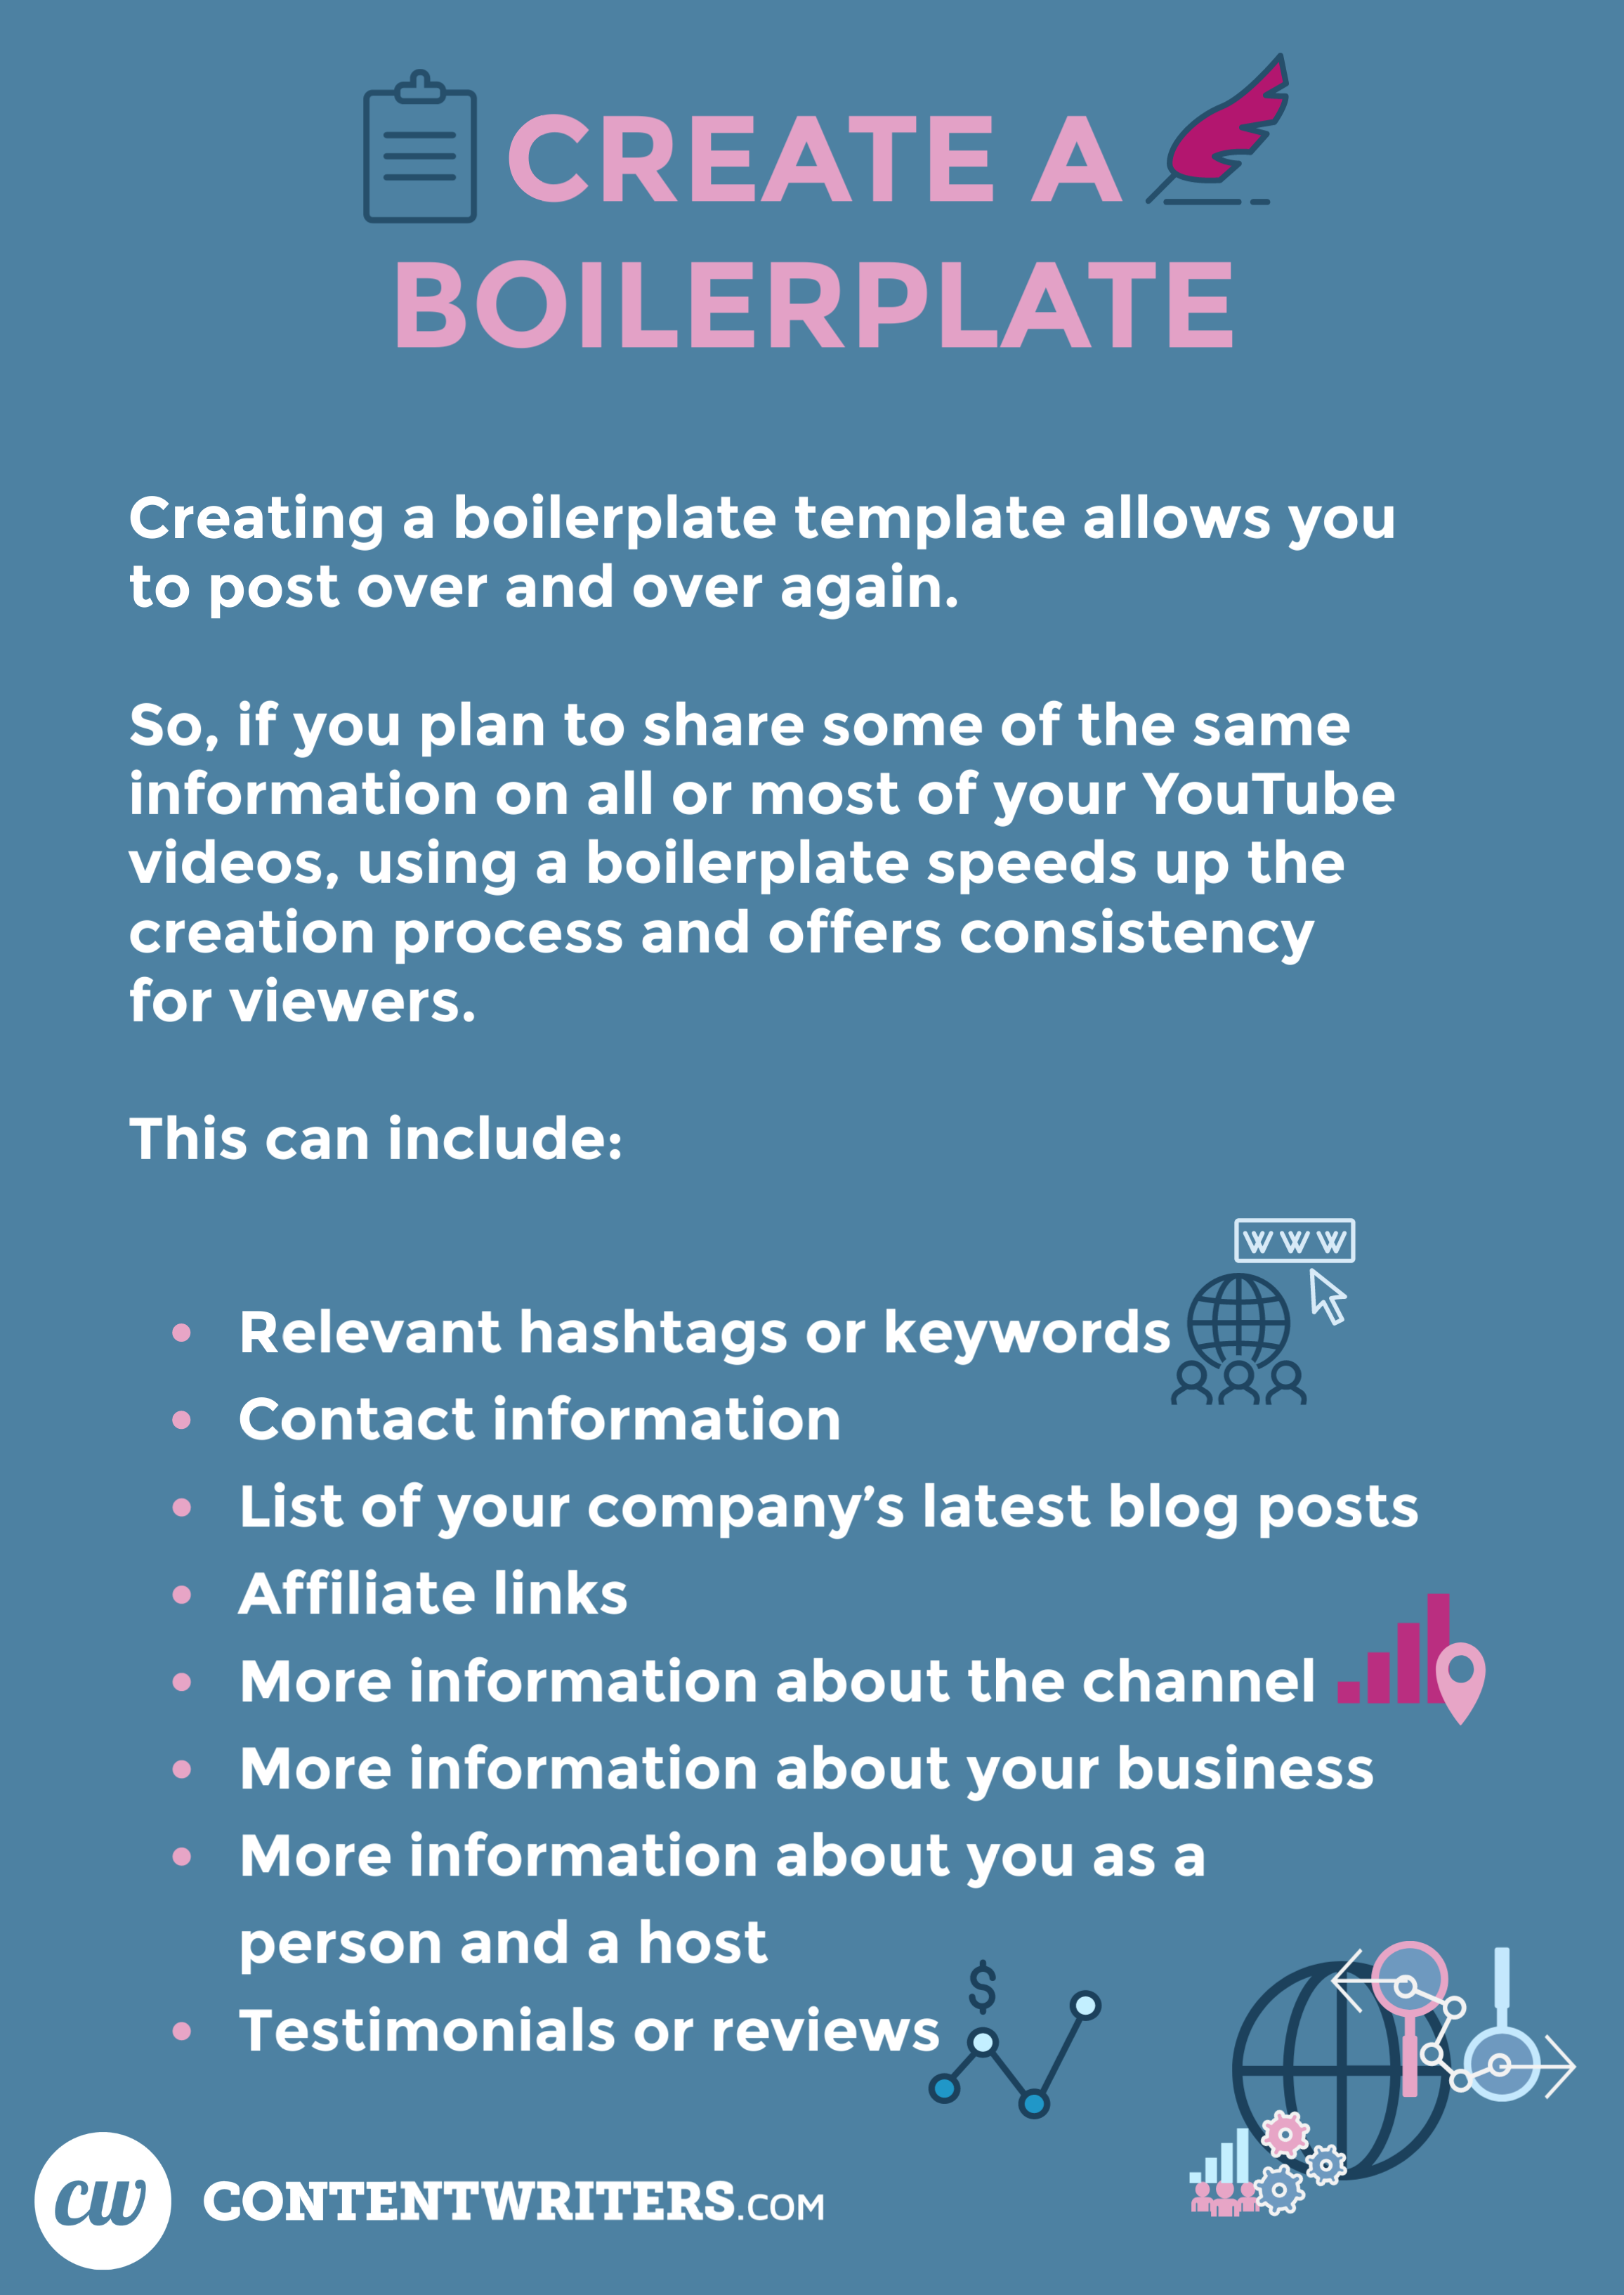 Create a Boilerplate Creating a boilerplate template allows you to post over and over again. So, if you plan to share some of the same information on all or most of your YouTube videos, using a boilerplate speeds up the creation process and offers consistency for viewers. This can include:  Relevant hashtags or keywords Contact information List of your company's latest blog posts Affiliate links More information about the channel More information about your business More information about you as a person and a host Testimonials or reviews